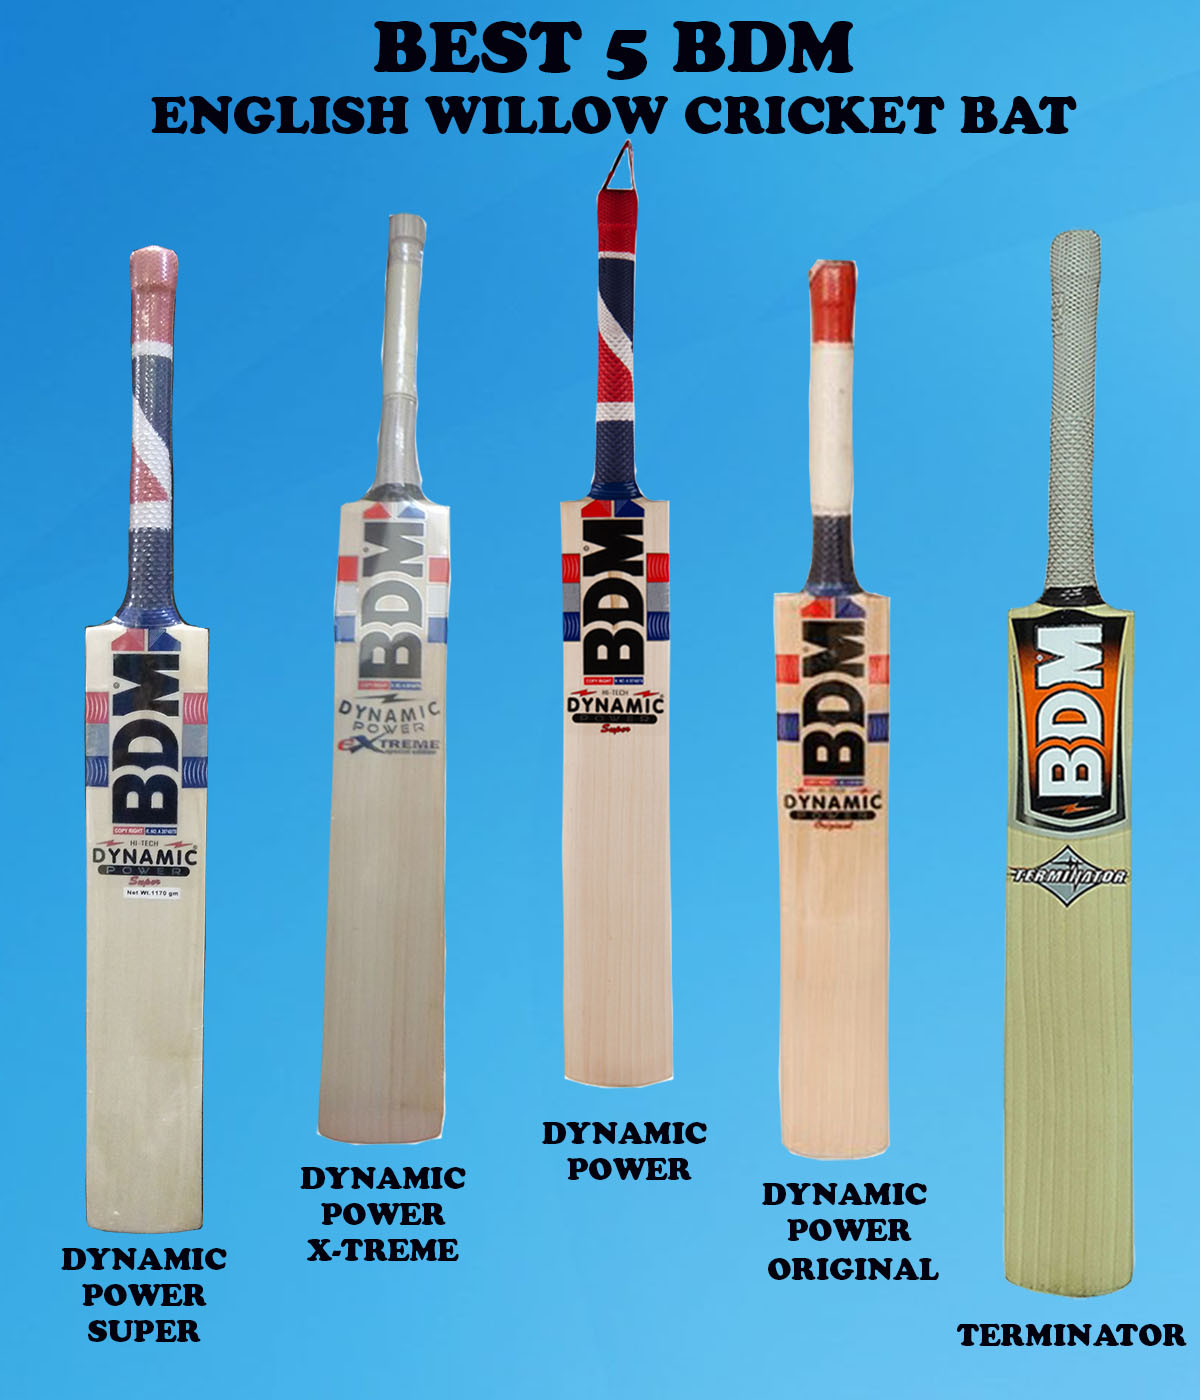 BDM 5 BDM ENGLISH WILLOW BAT IMAGES